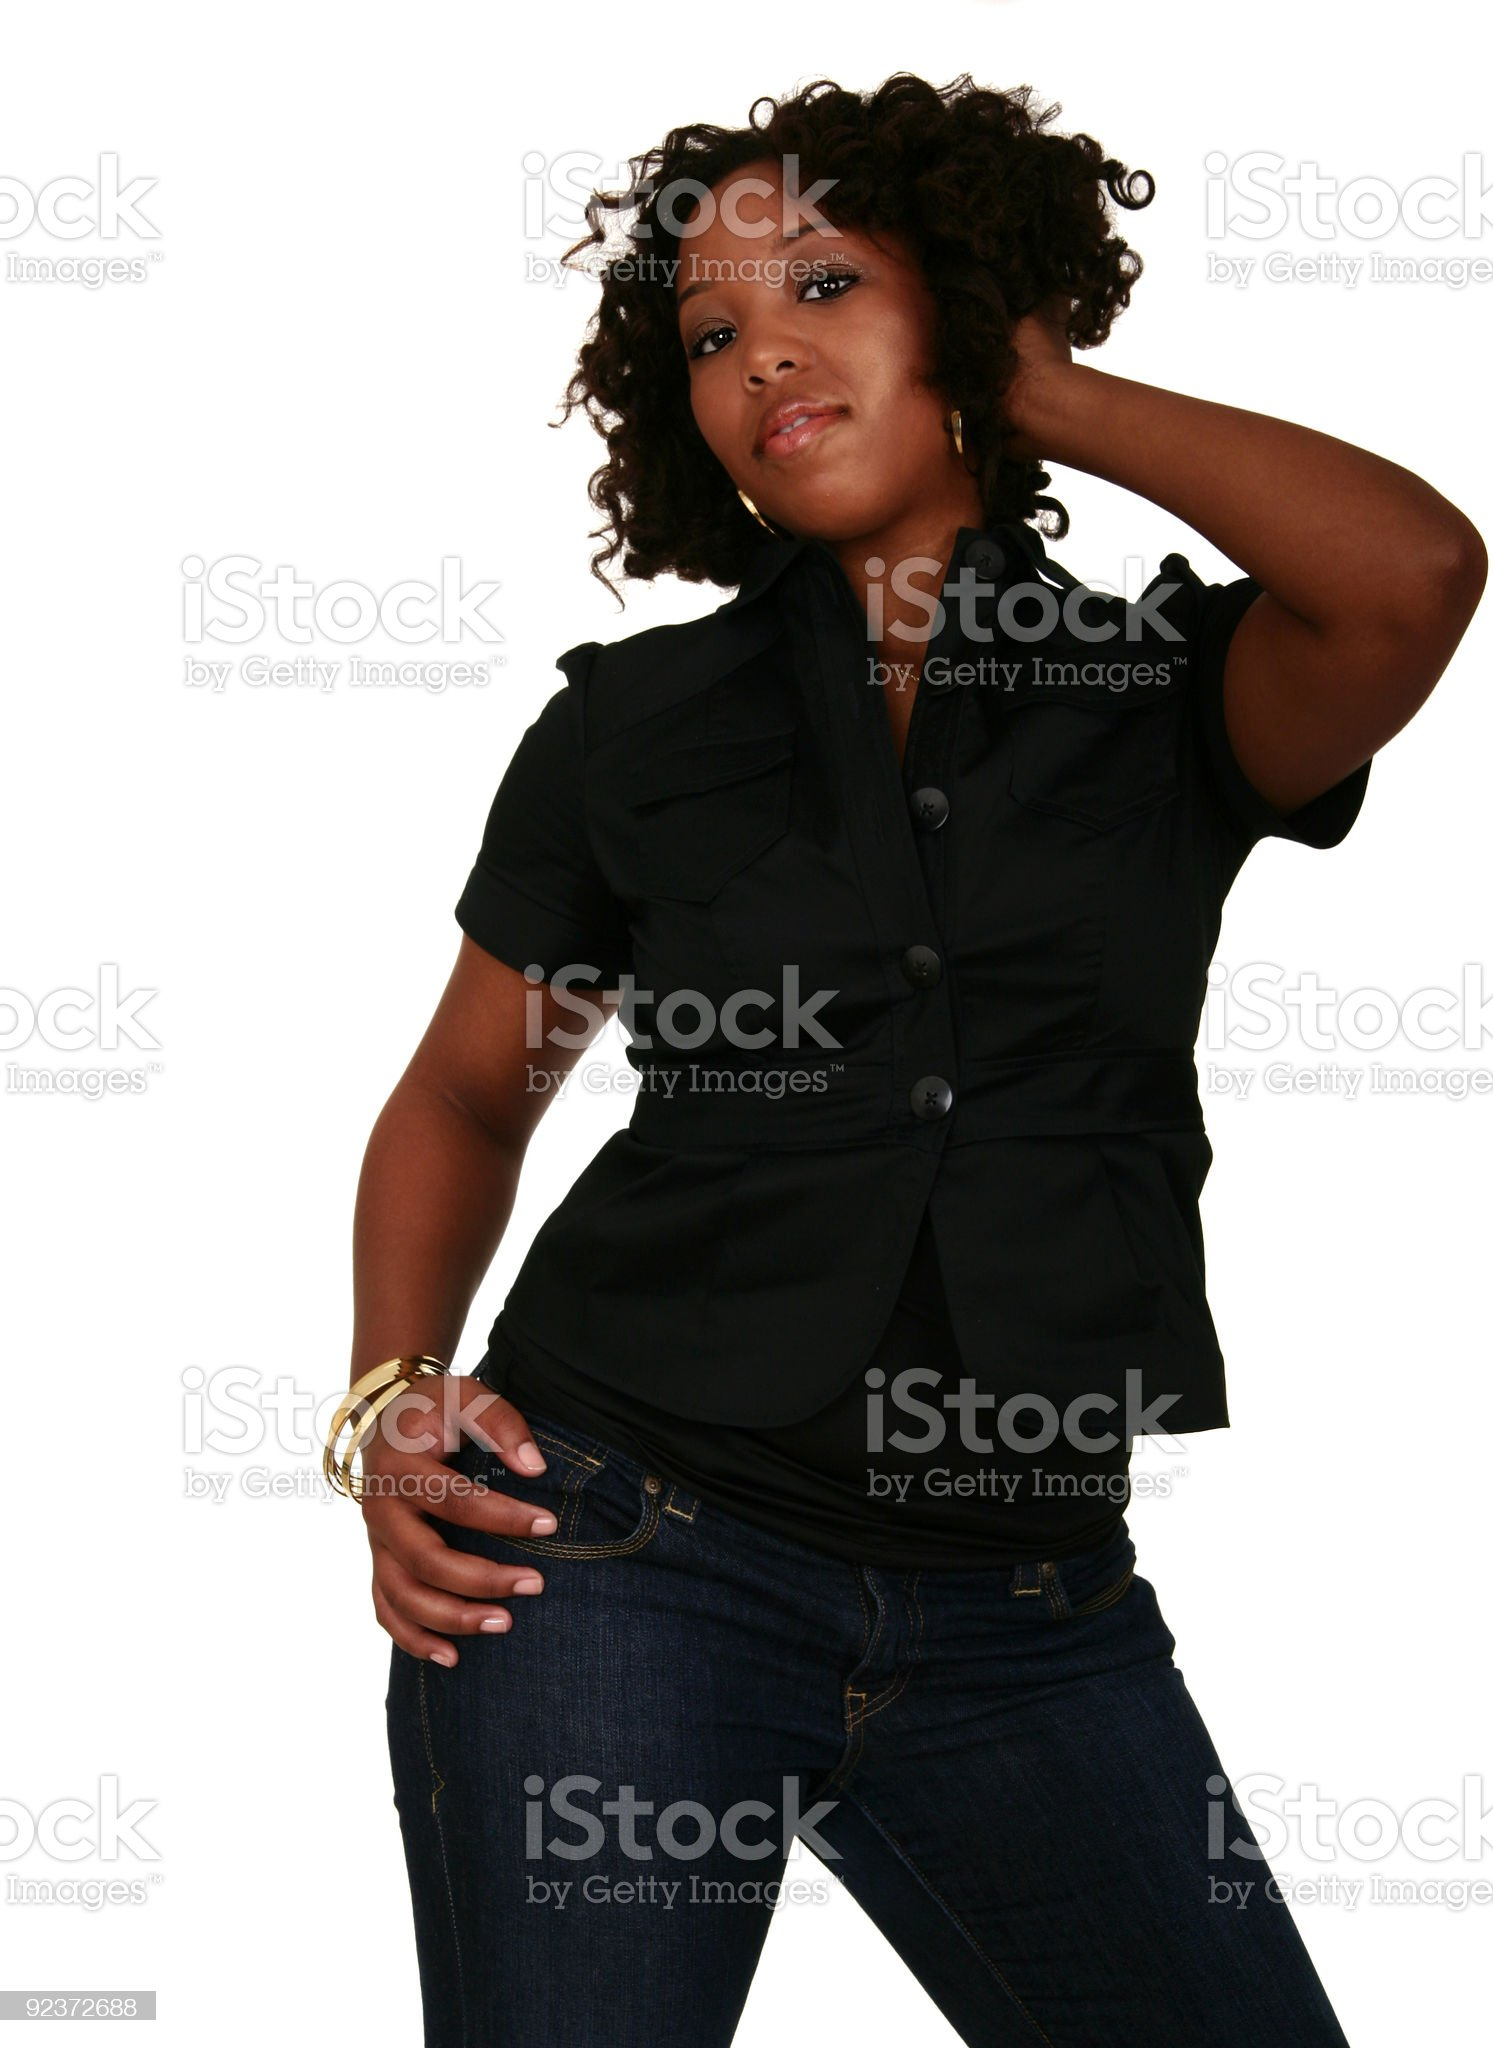 African American Girl Beauty Shot 2 royalty-free stock photo